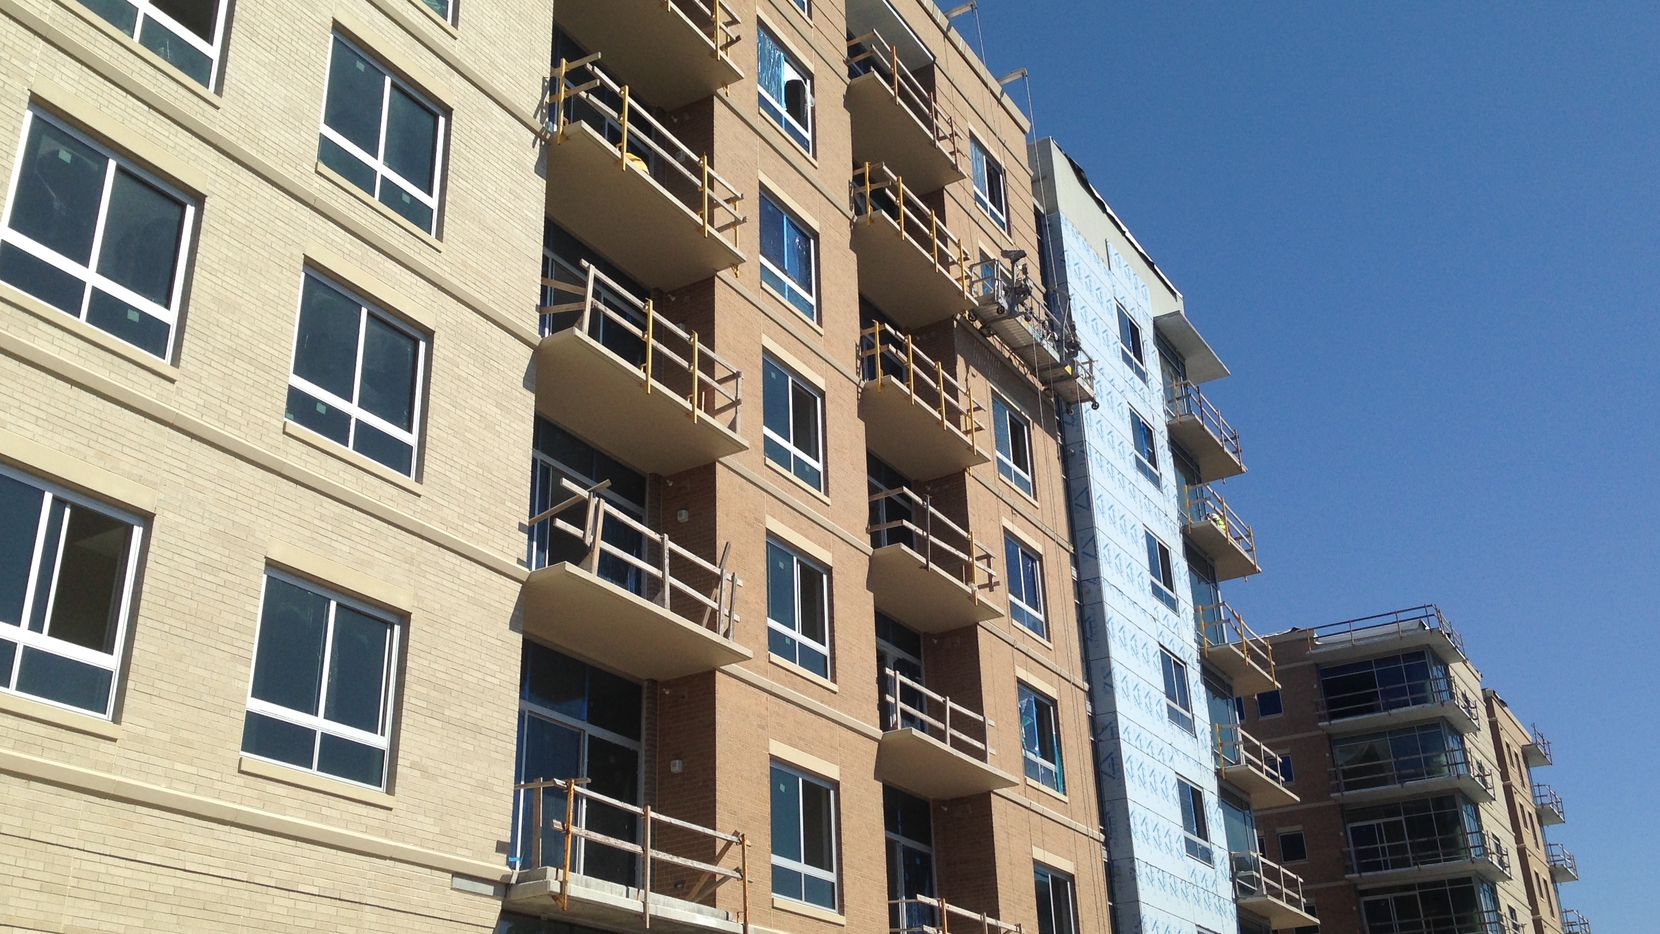 The 215-unit The Katy apartments on are Cole Avenue near Knox Street on the edge of Highland Park.